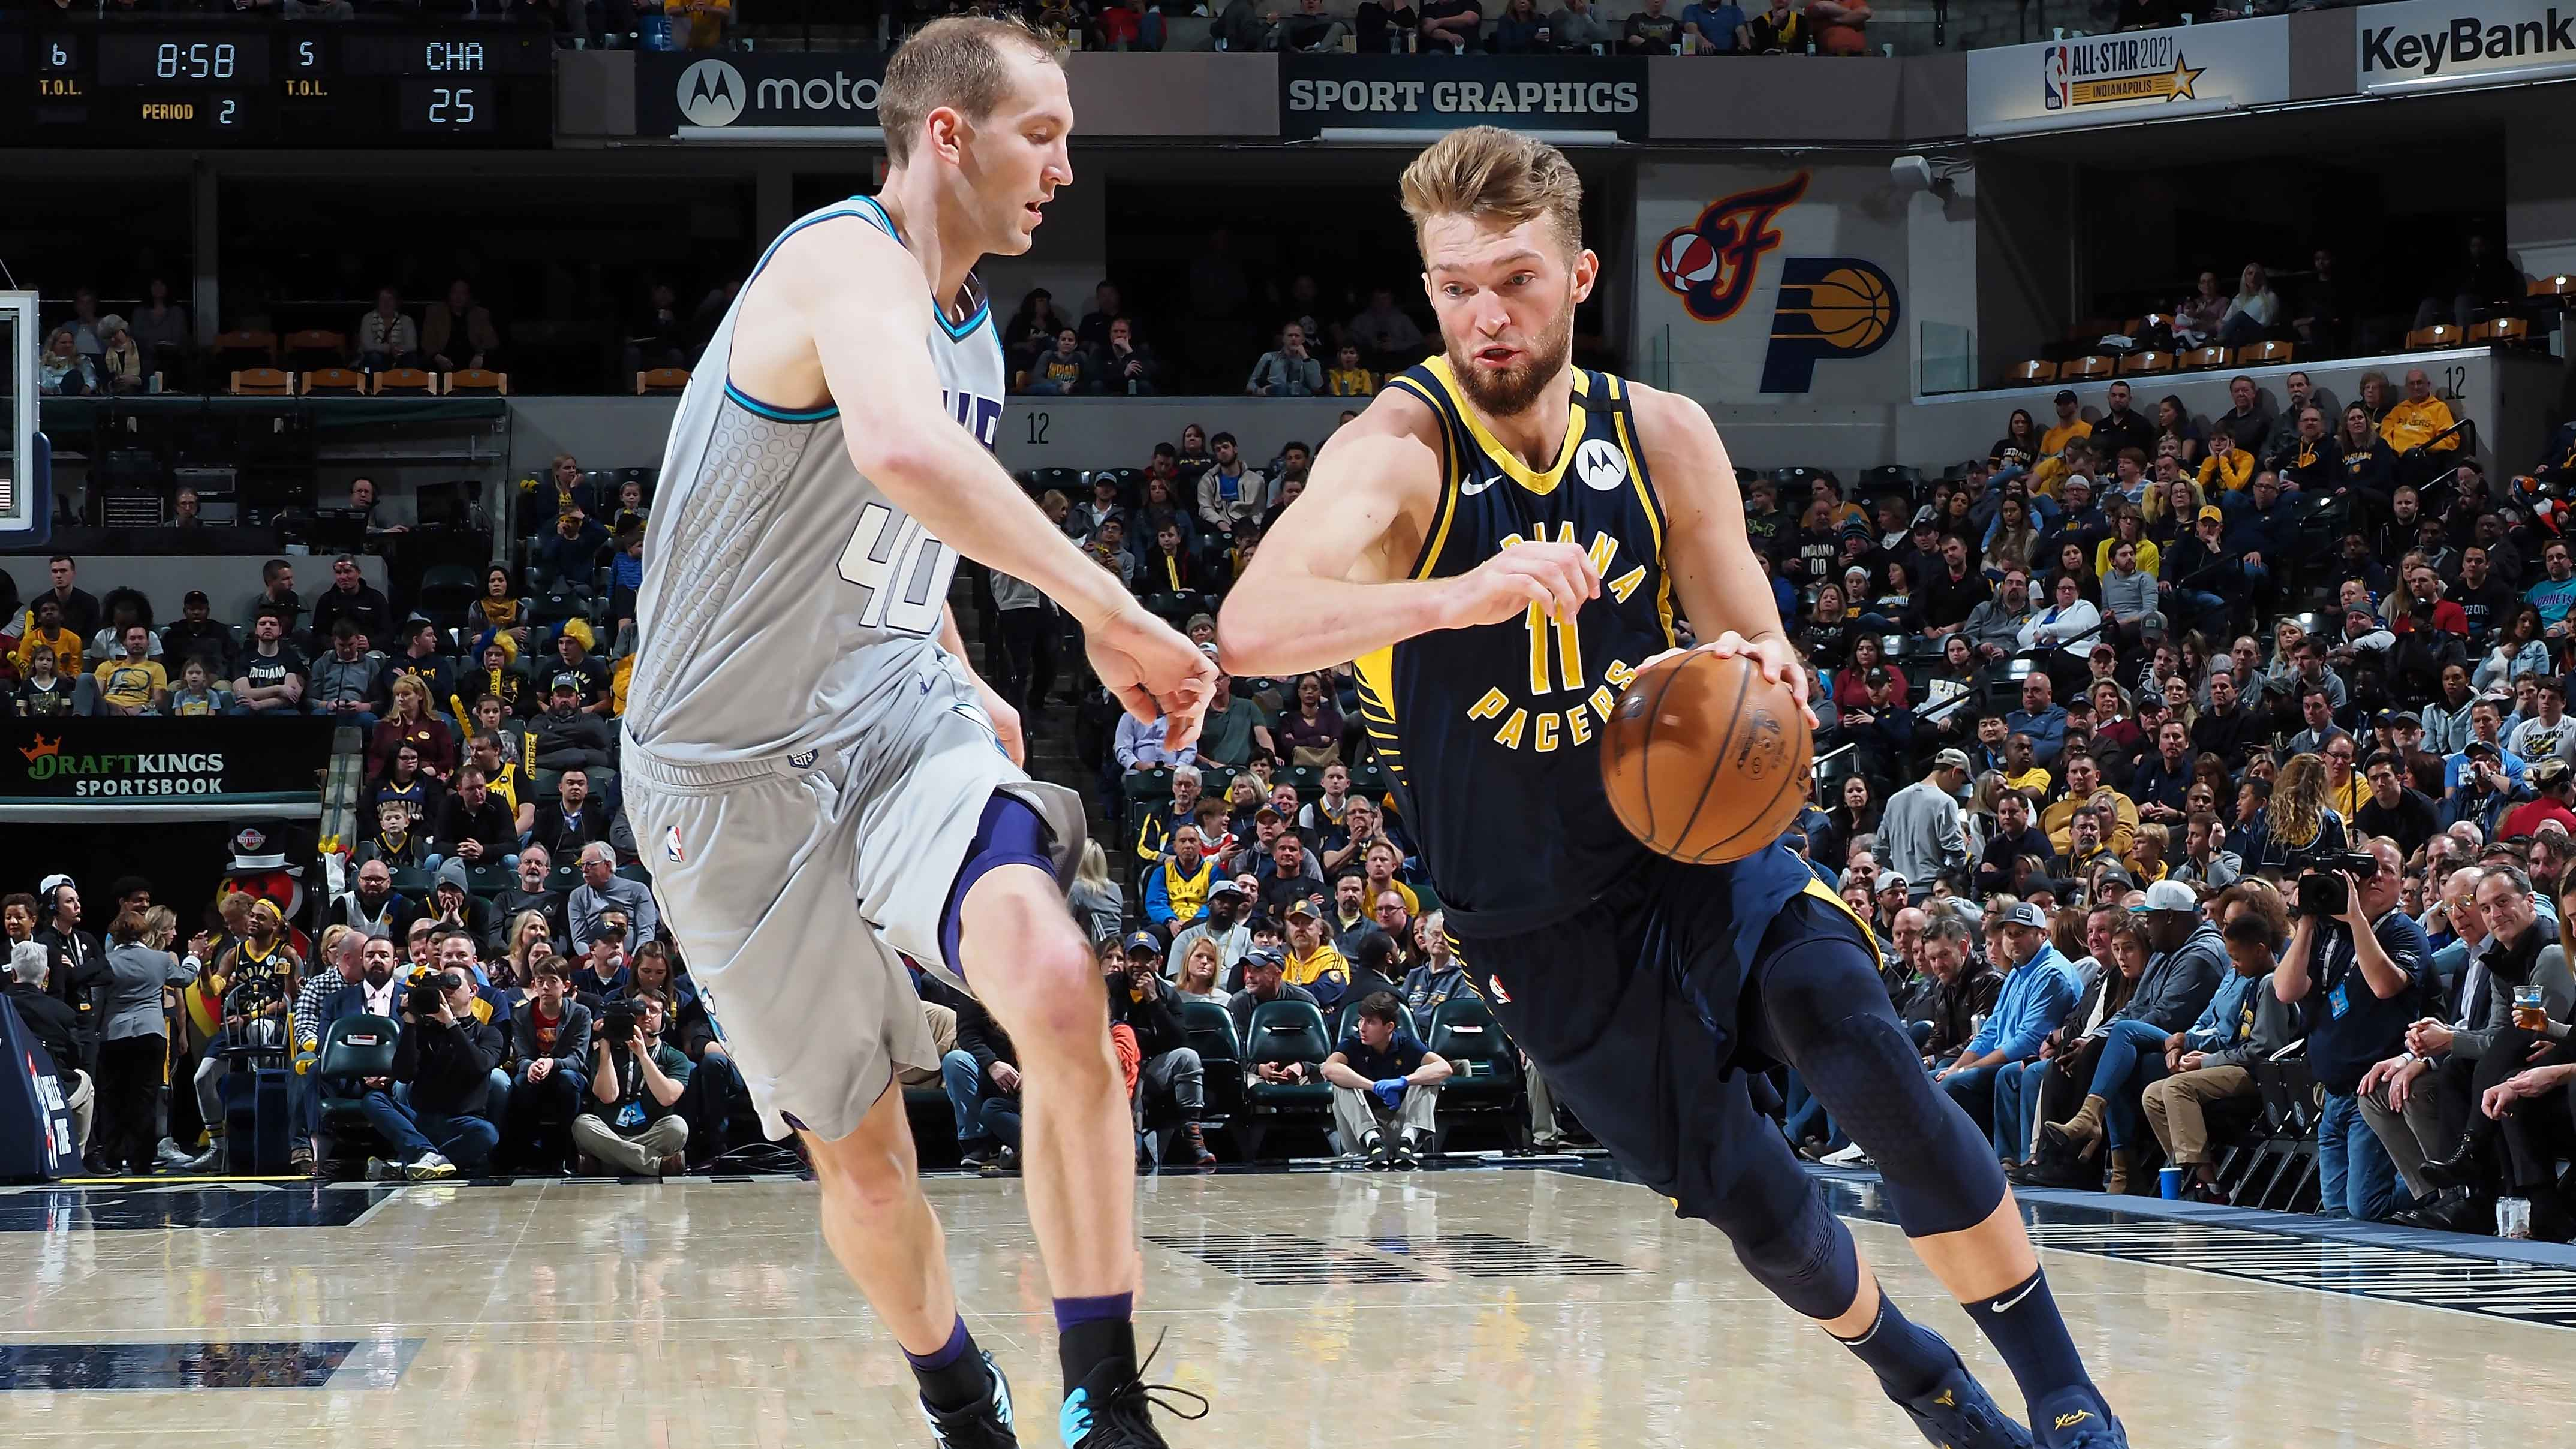 GAME RECAP: Pacers 119, Hornets 80